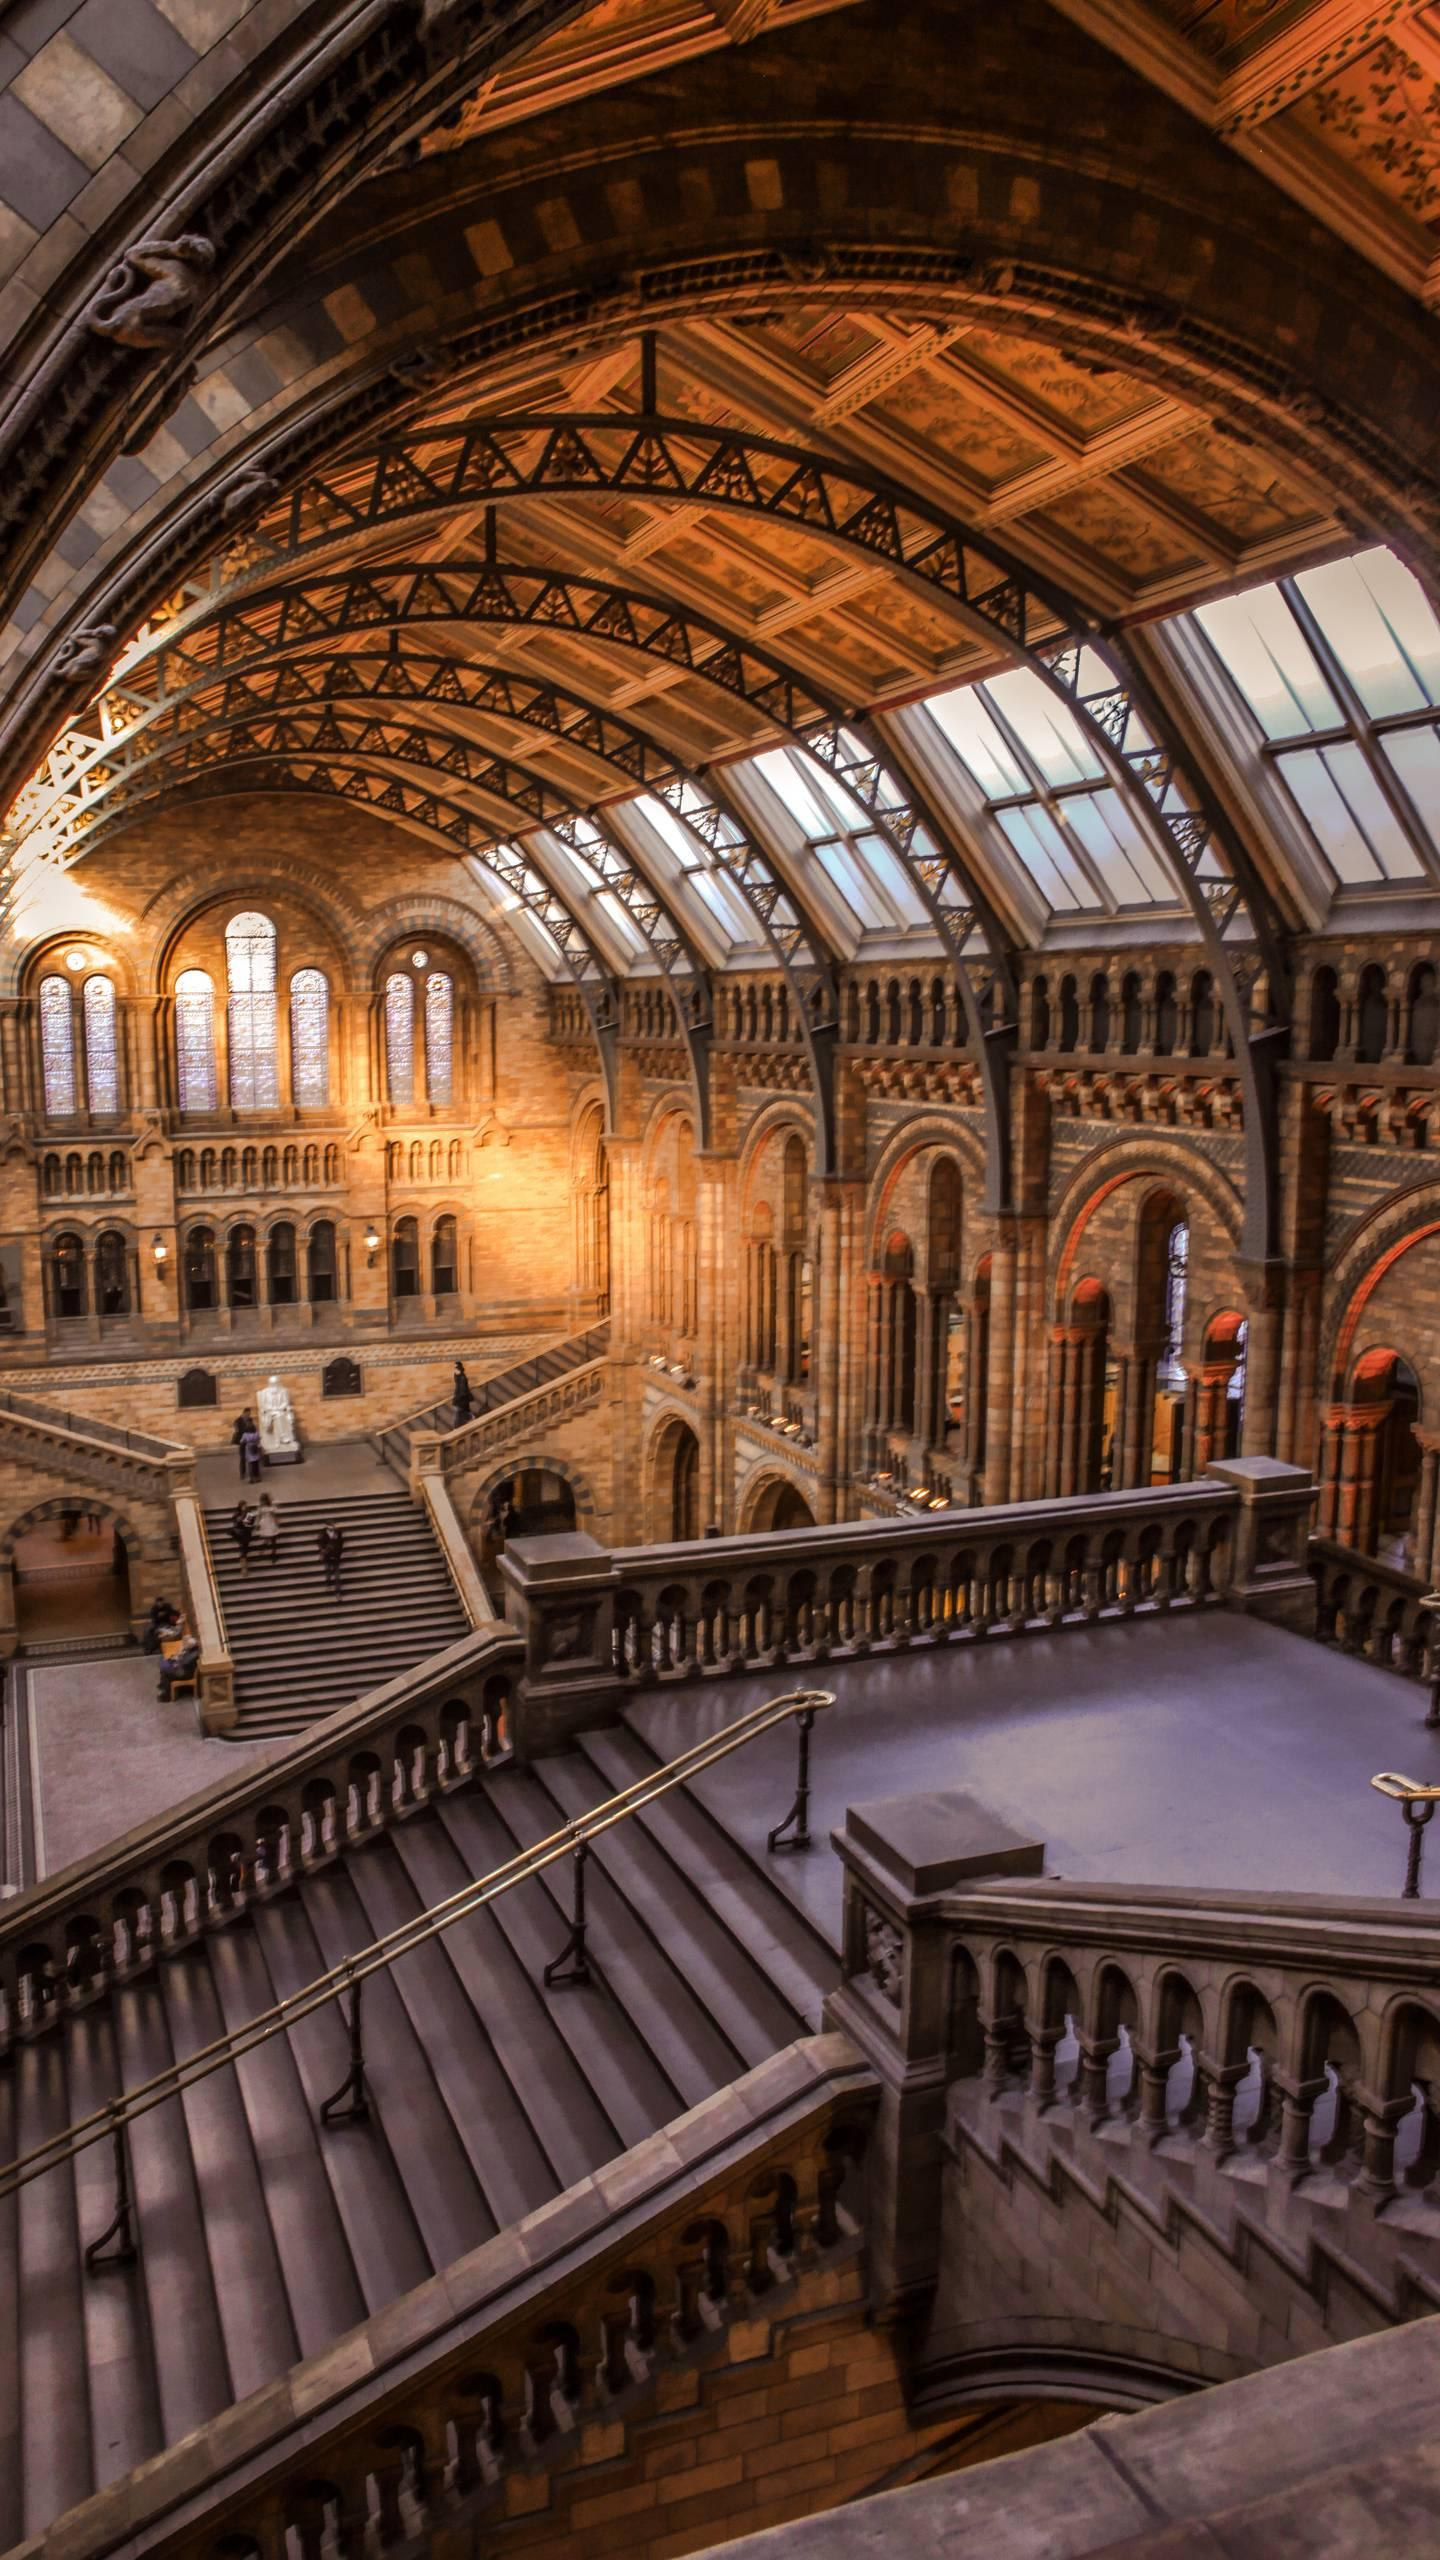 British Museum of Natural History. Located in the South Kensington area of London, it is a Victorian building resembling a medieval cathedral.